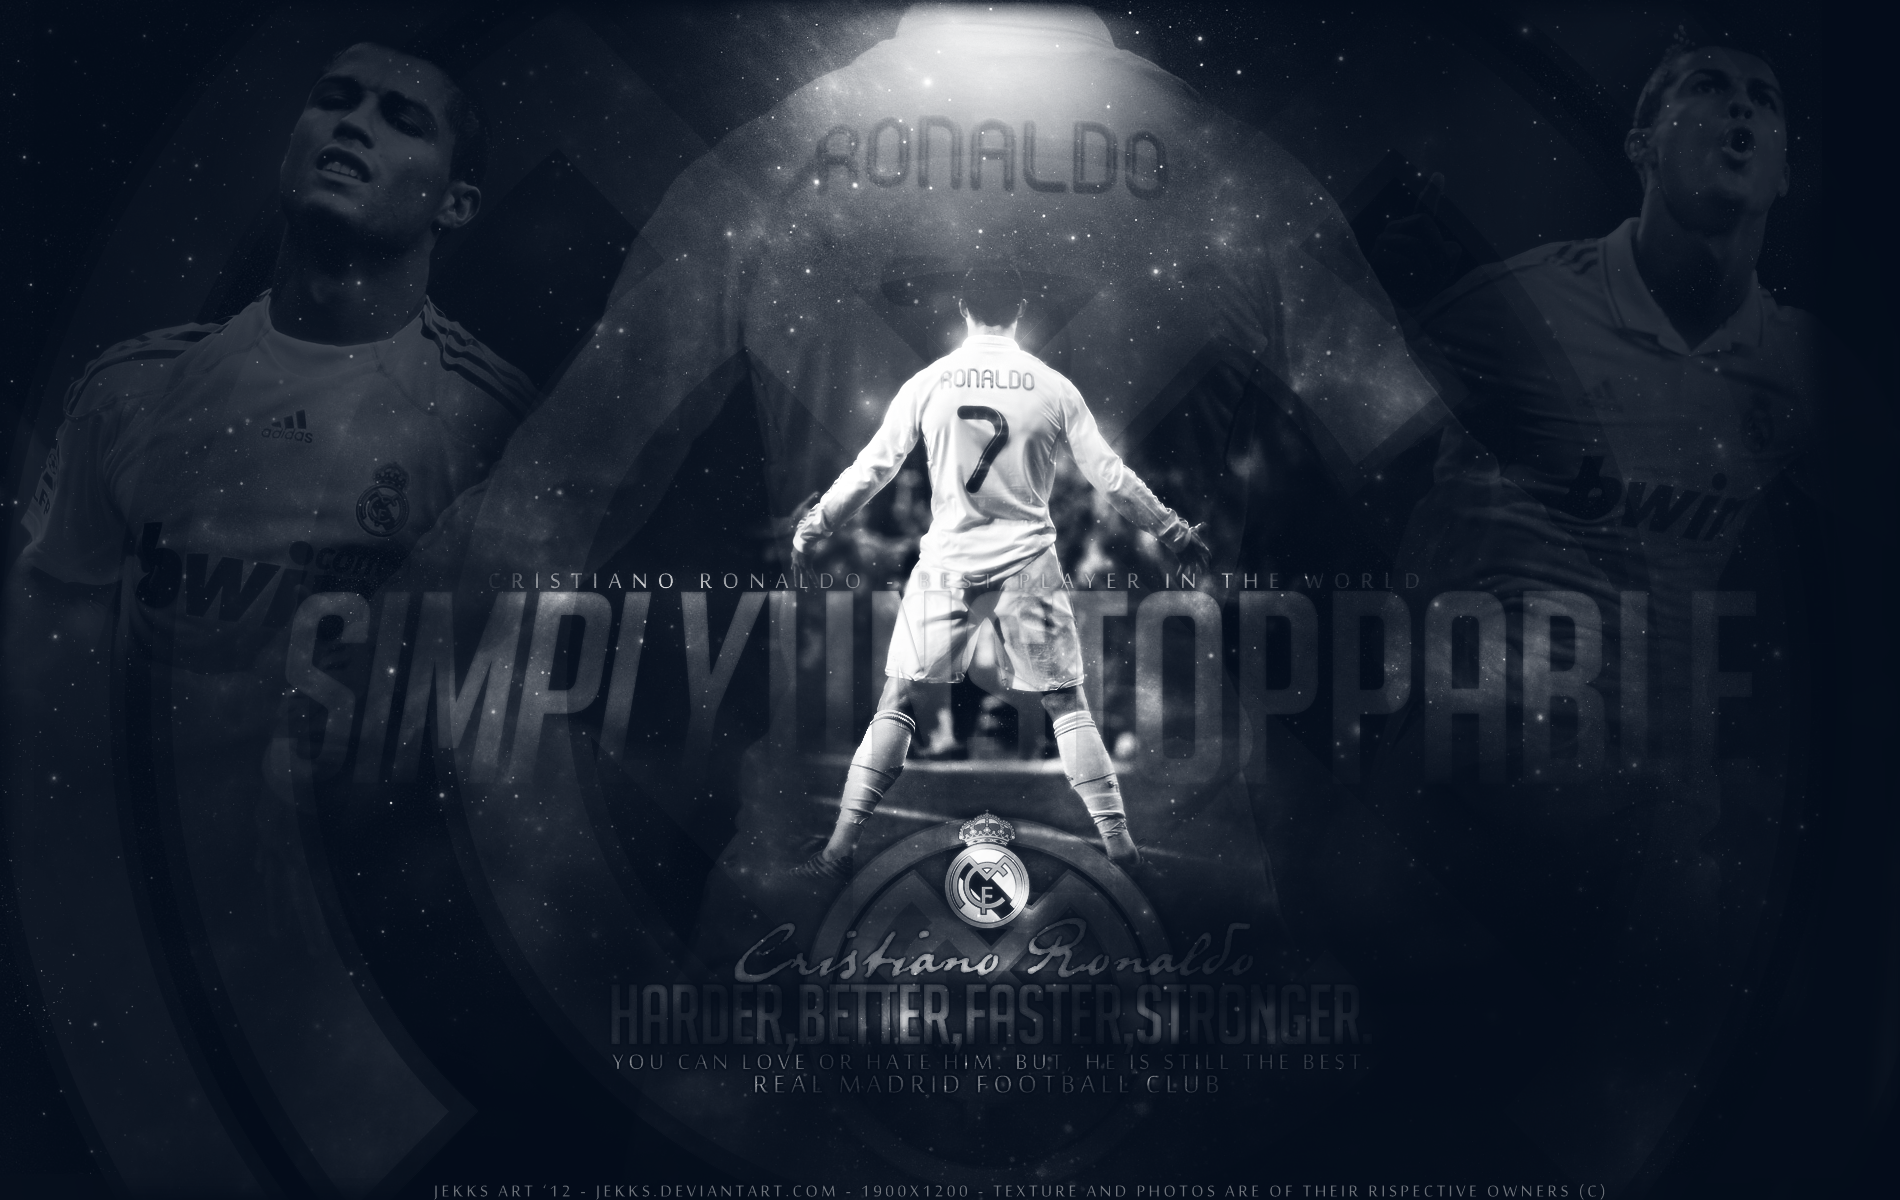 CRISTIANO RONALDO 7 - THE BEST by Jekks